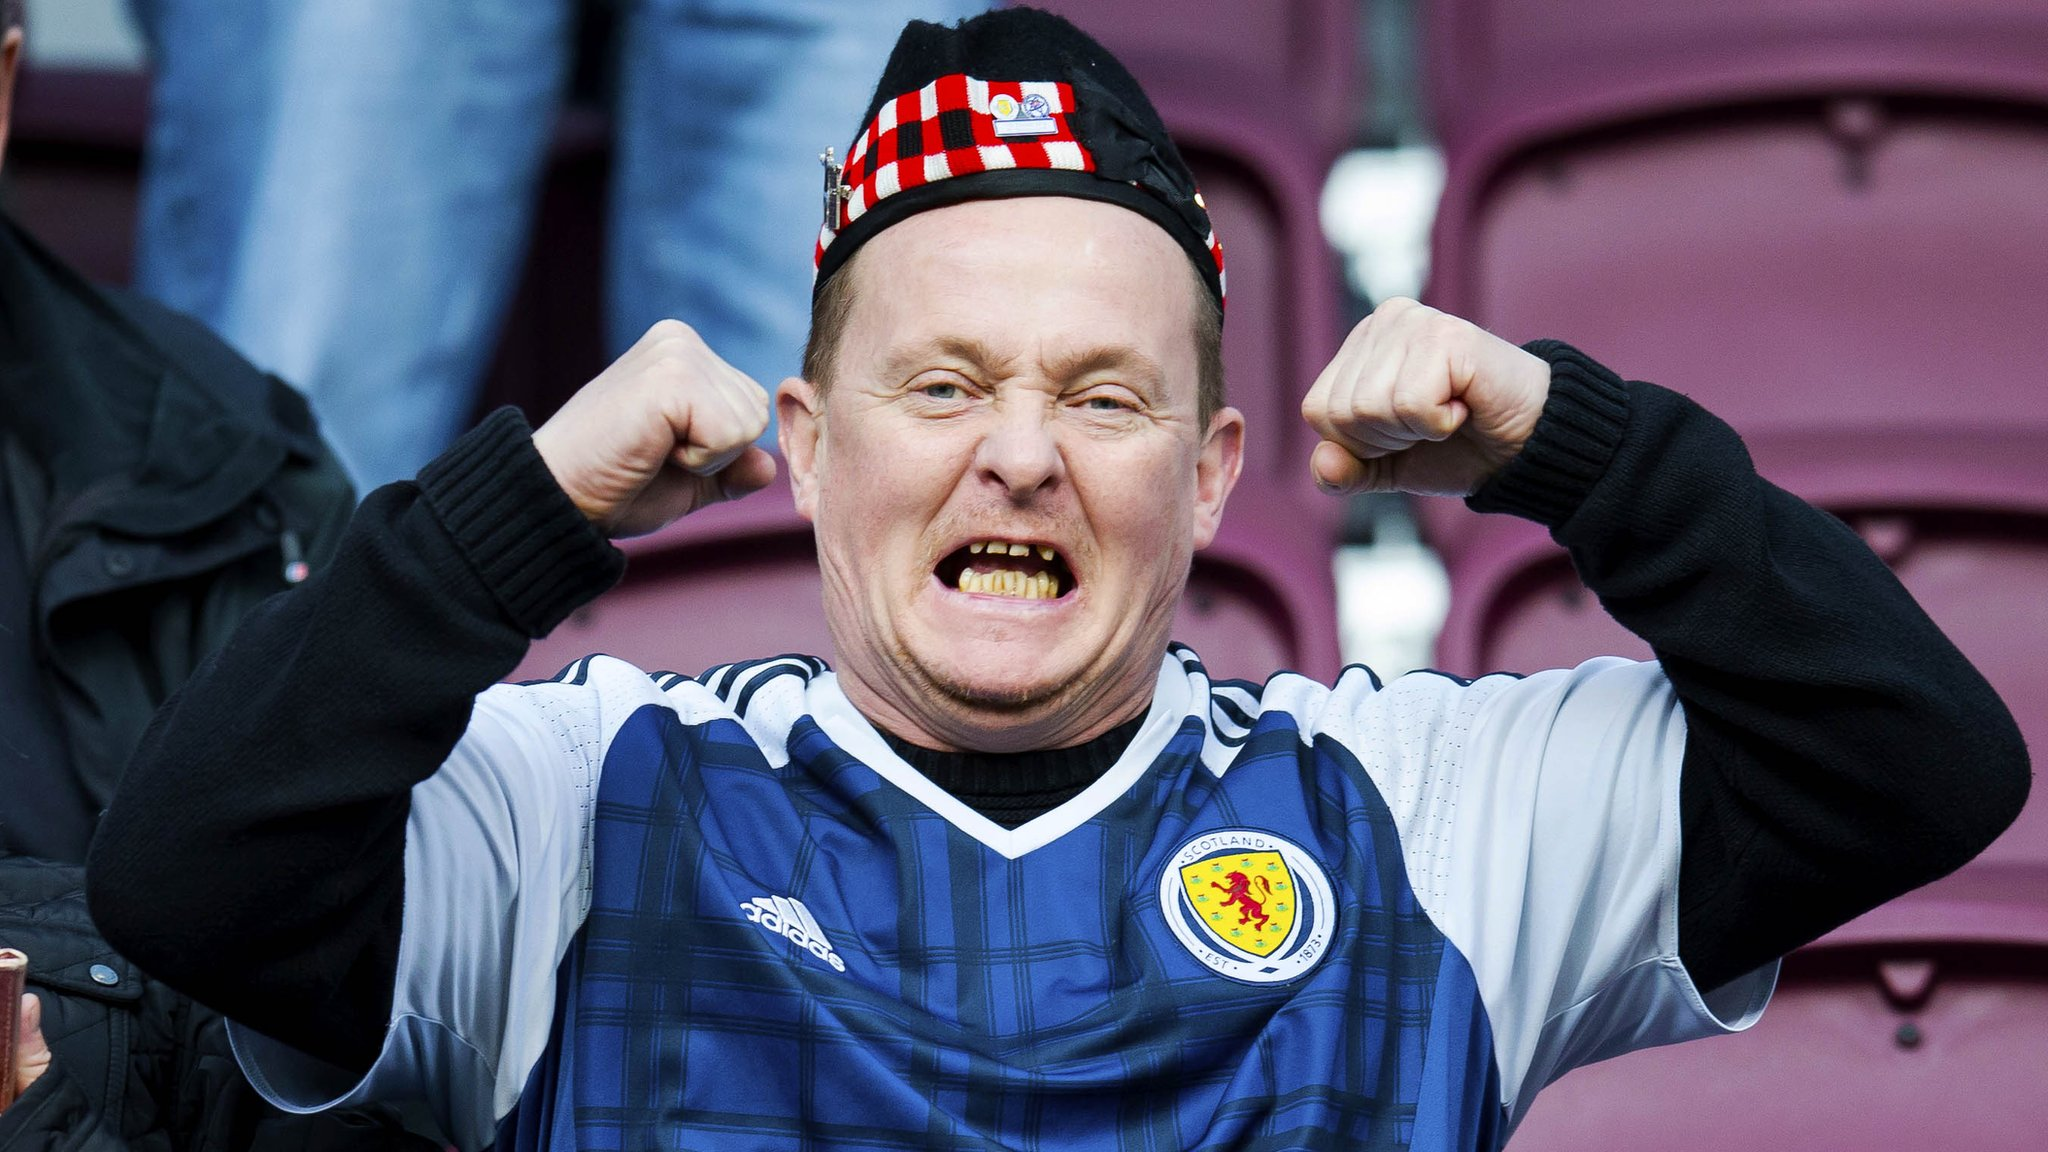 Where does Israel loss leave Scotland in race for Euros?